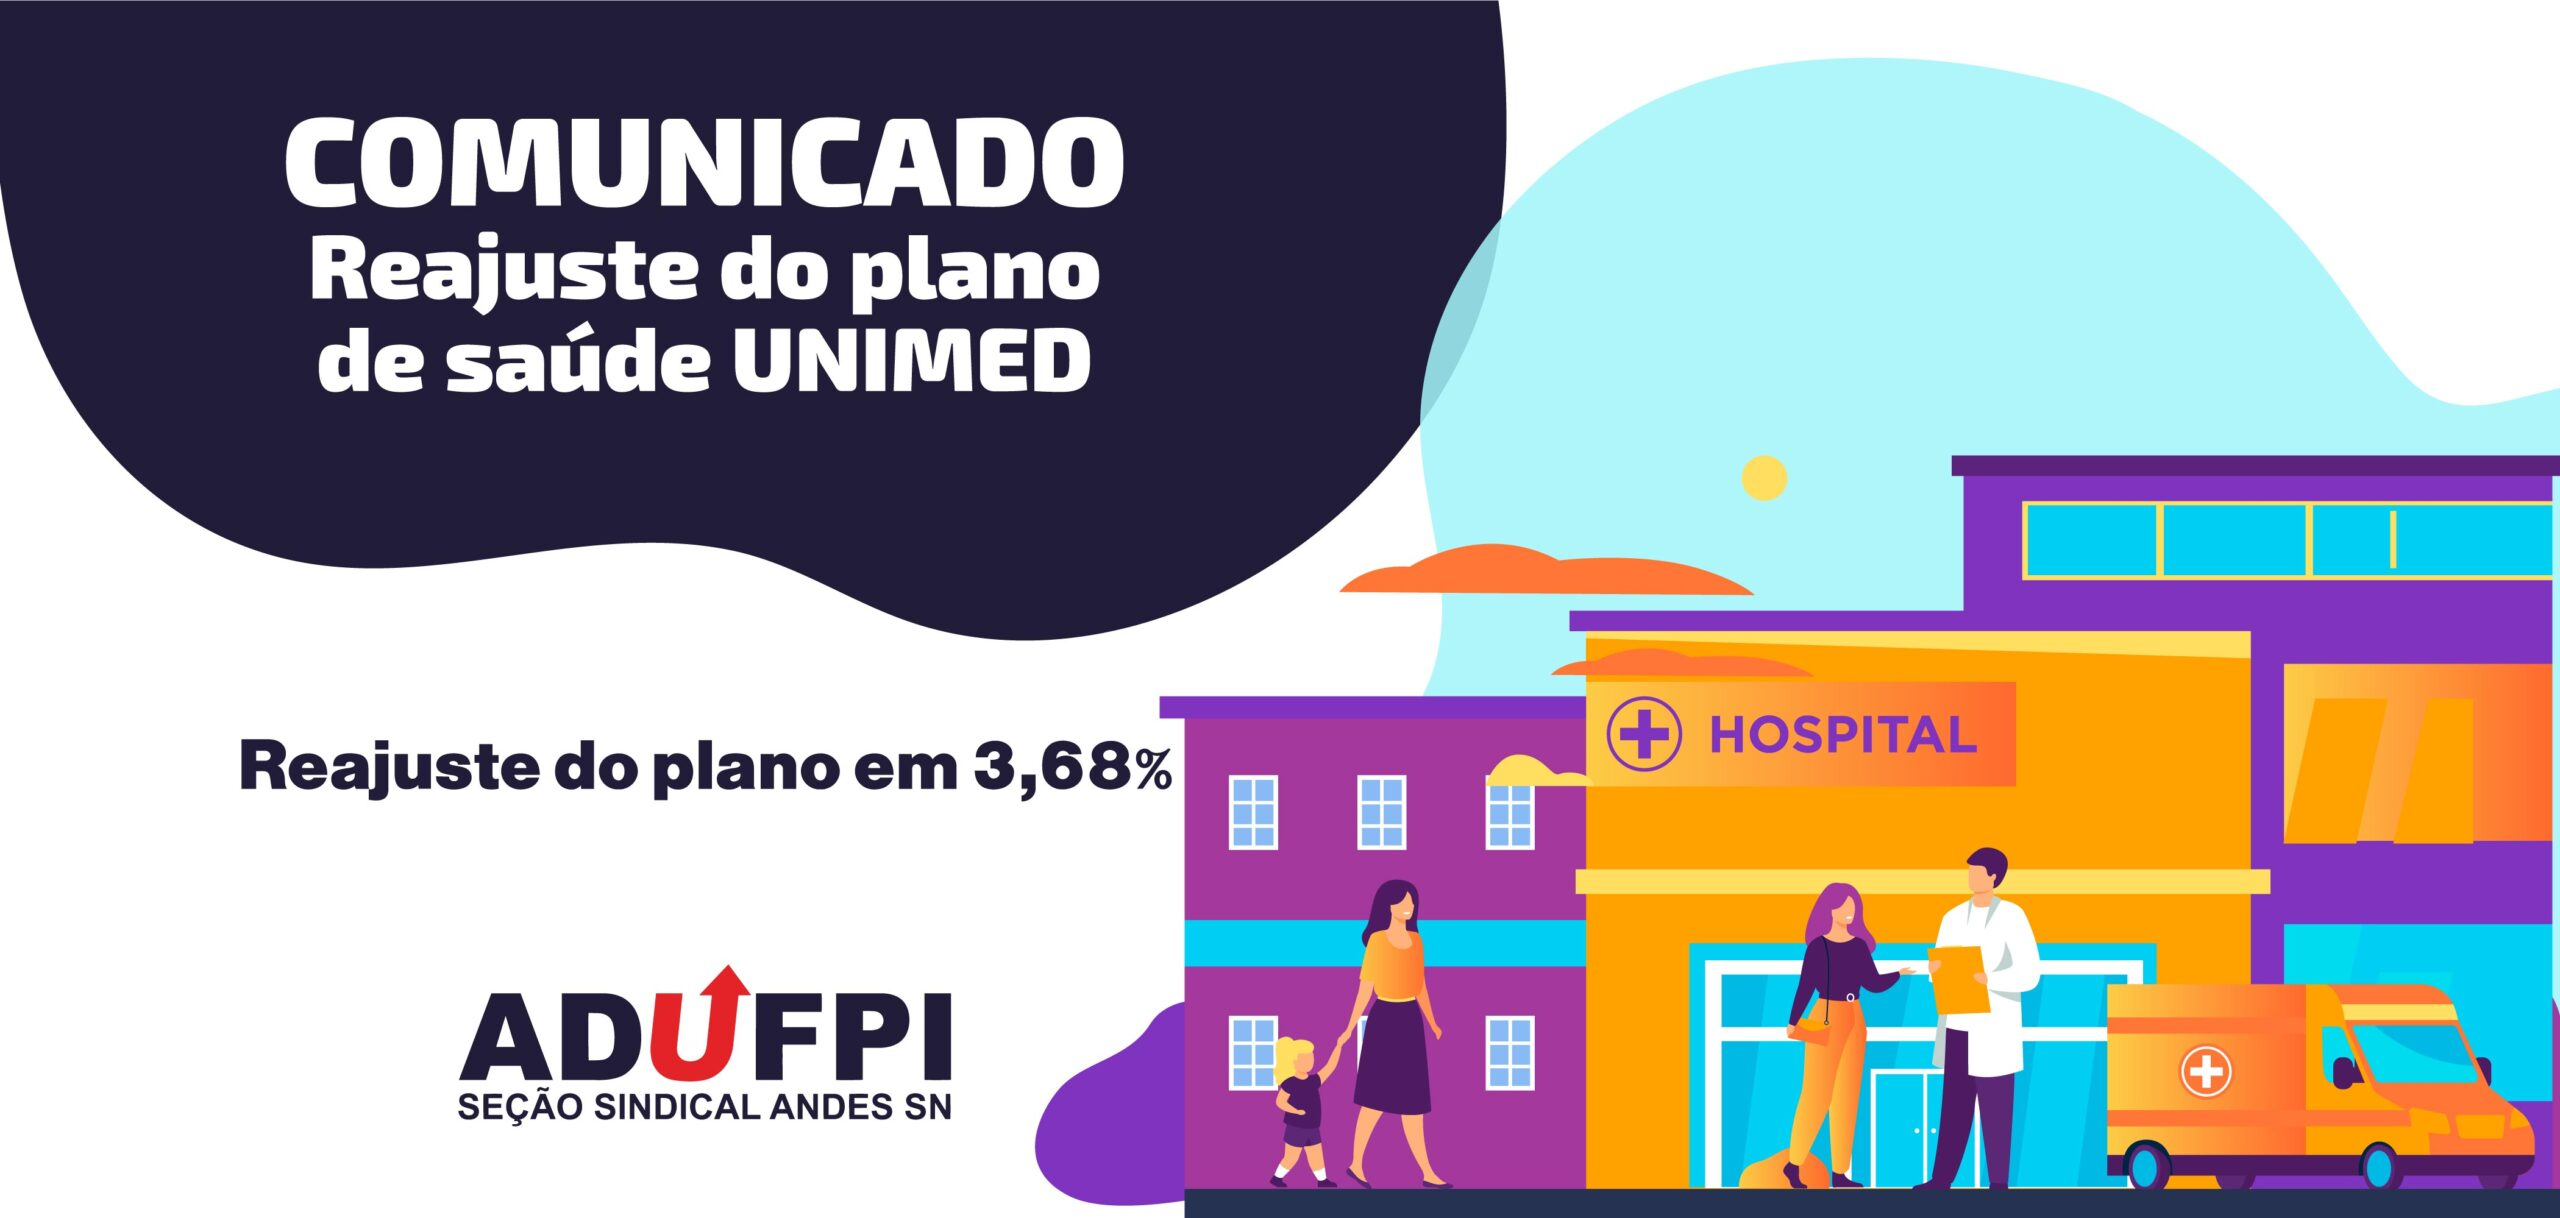 Comunicado -Reajuste do plano UNIMED